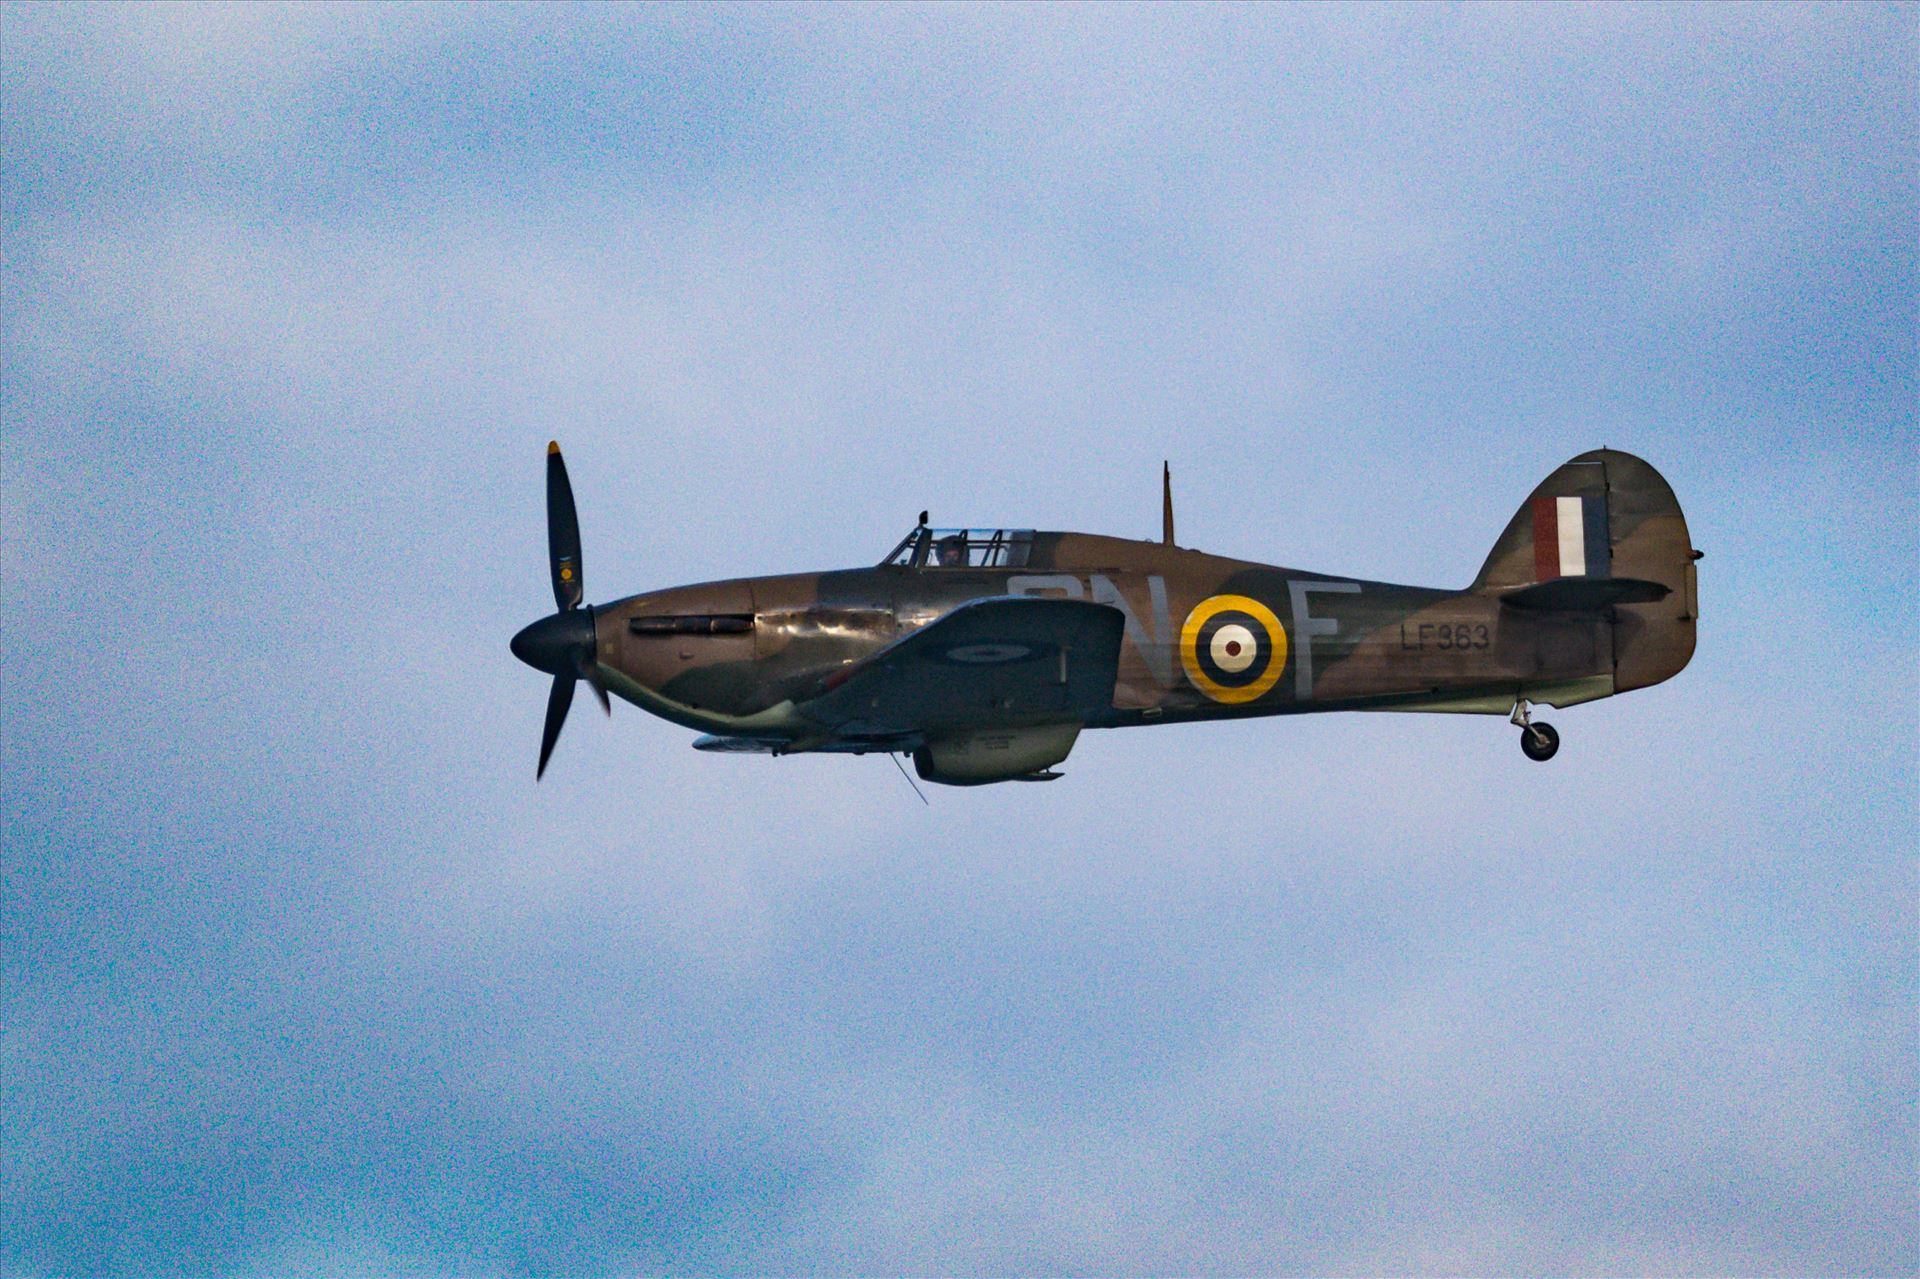 RAF Spitfire Fly By - Taken in 2017 at Sunderland International Airshow by AJ Stoves Photography